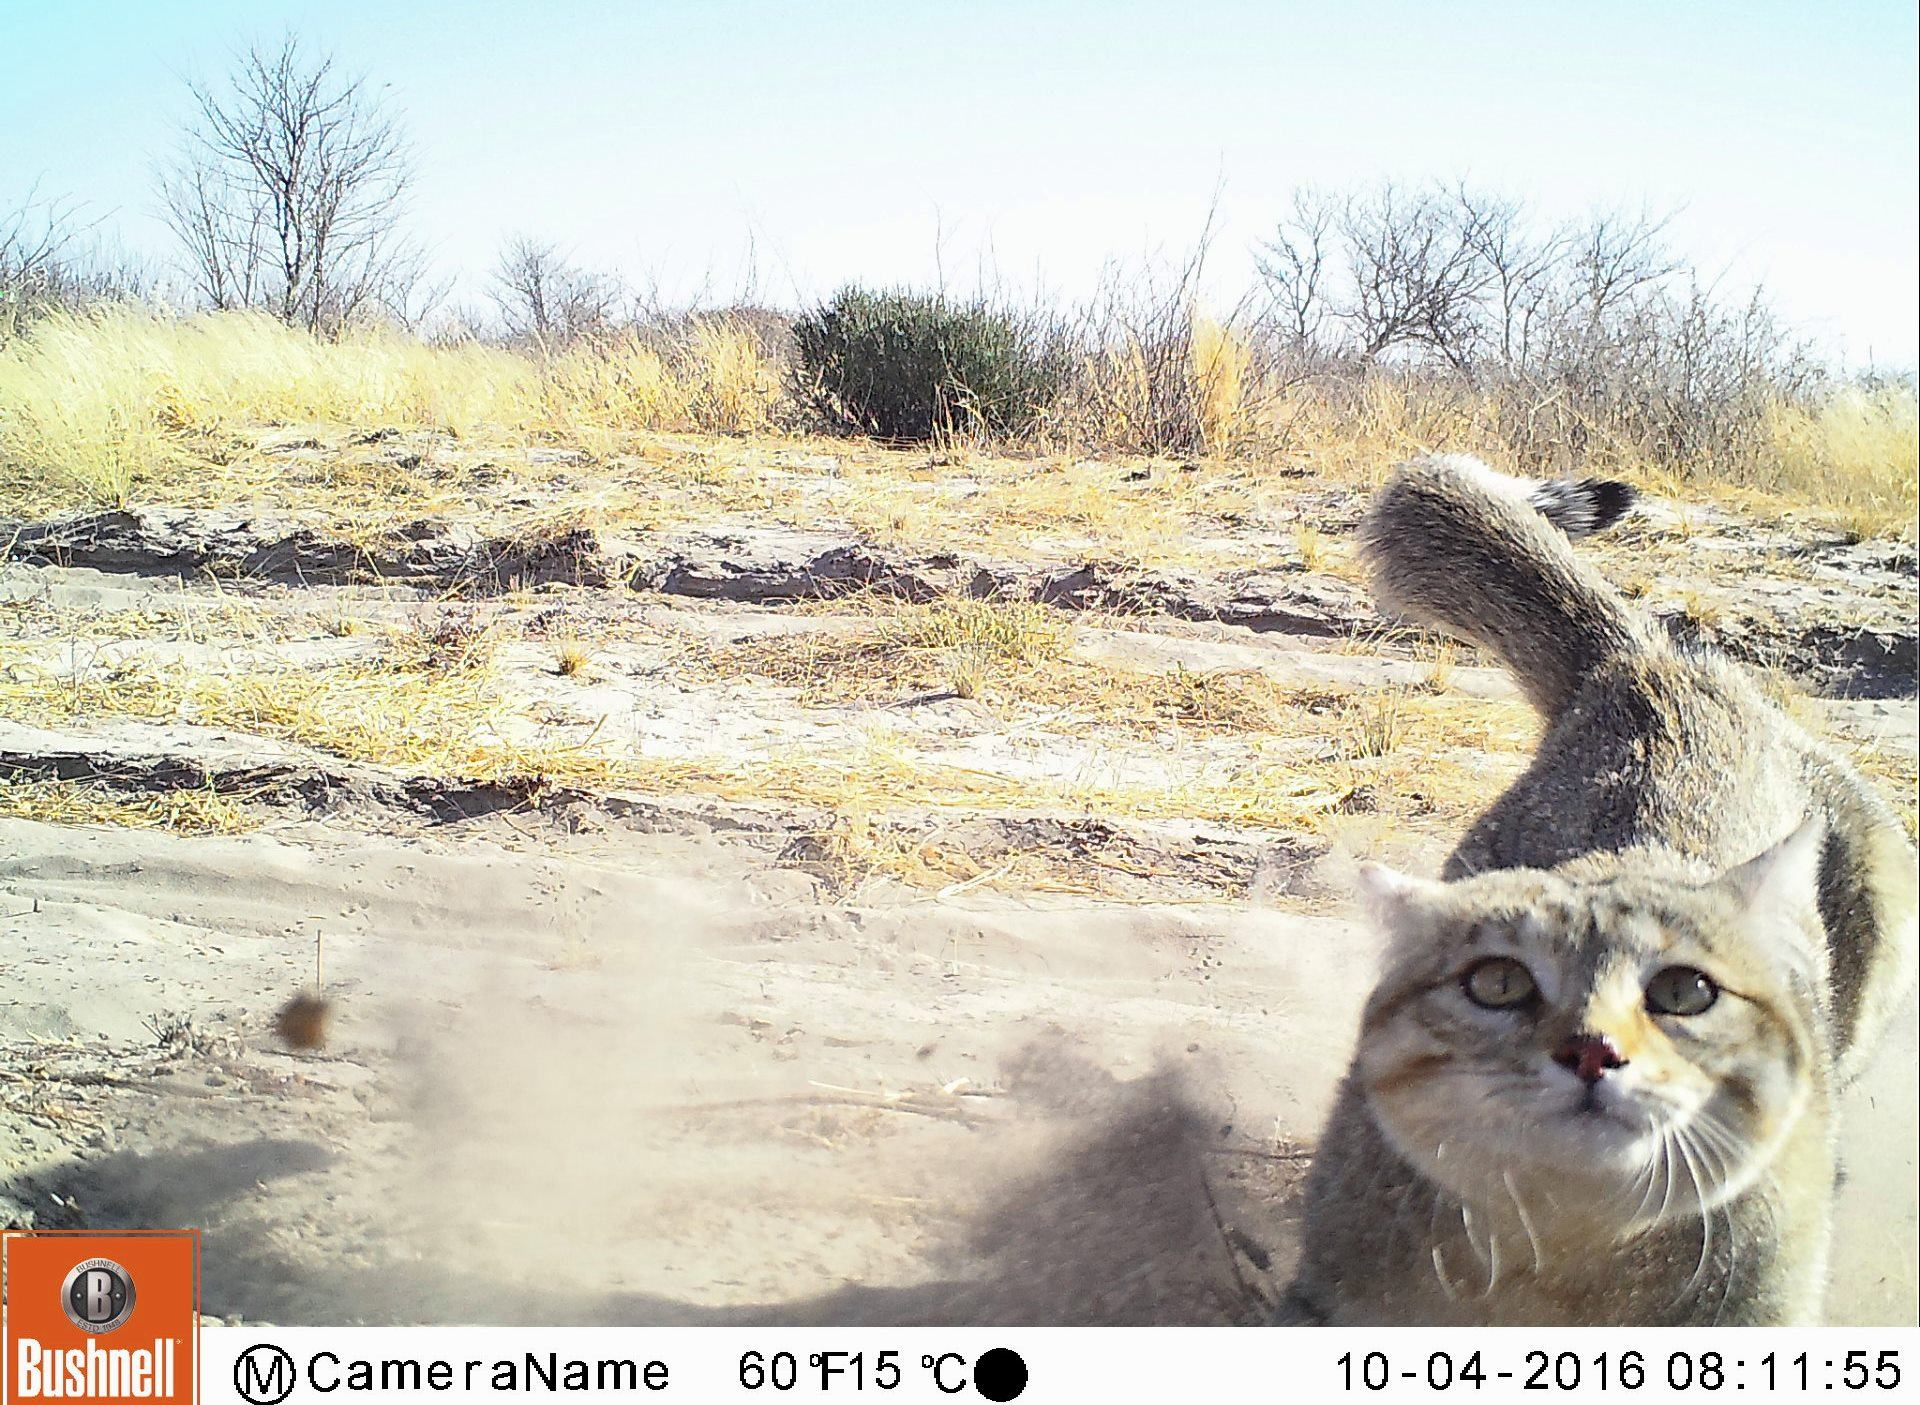 This African wildcat demonstrates that cheetahs are not the only wild cats caught in the camera traps.